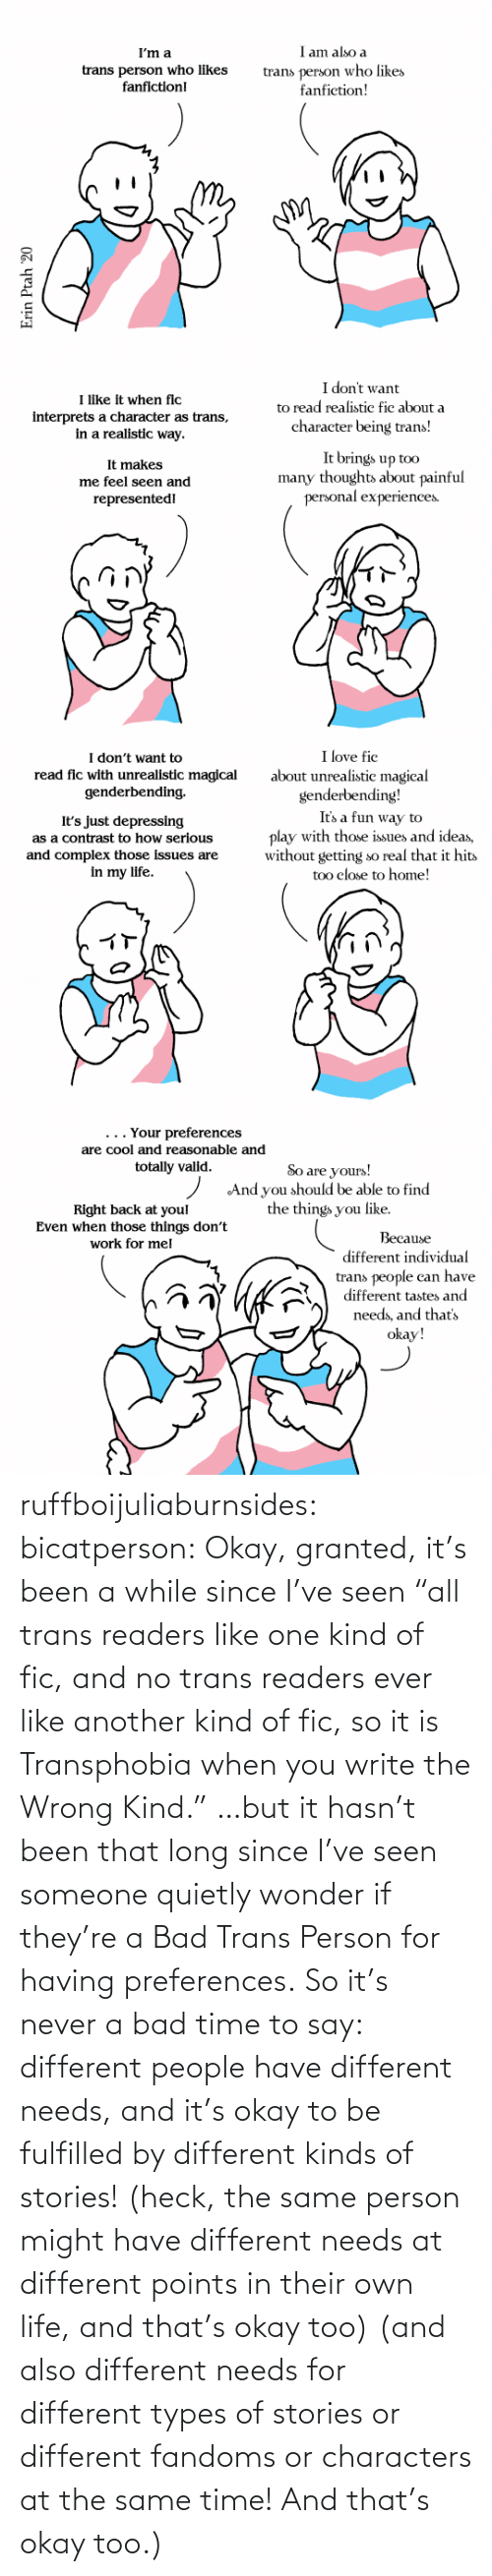 "at the same time: ruffboijuliaburnsides: bicatperson:   Okay, granted, it's been a while since I've seen ""all trans readers  like one kind of fic, and no trans readers ever like another kind of  fic, so it is Transphobia when you write the Wrong Kind."" …but it hasn't been that long since I've seen someone quietly wonder if they're a Bad Trans Person for having preferences. So  it's never a bad time to say: different people have different needs,  and it's okay to be fulfilled by different kinds of stories! (heck, the same person might have different needs at different points in their own life, and that's okay too)    (and also different needs for different types of stories or different fandoms or characters at the same time!  And that's okay too.)"